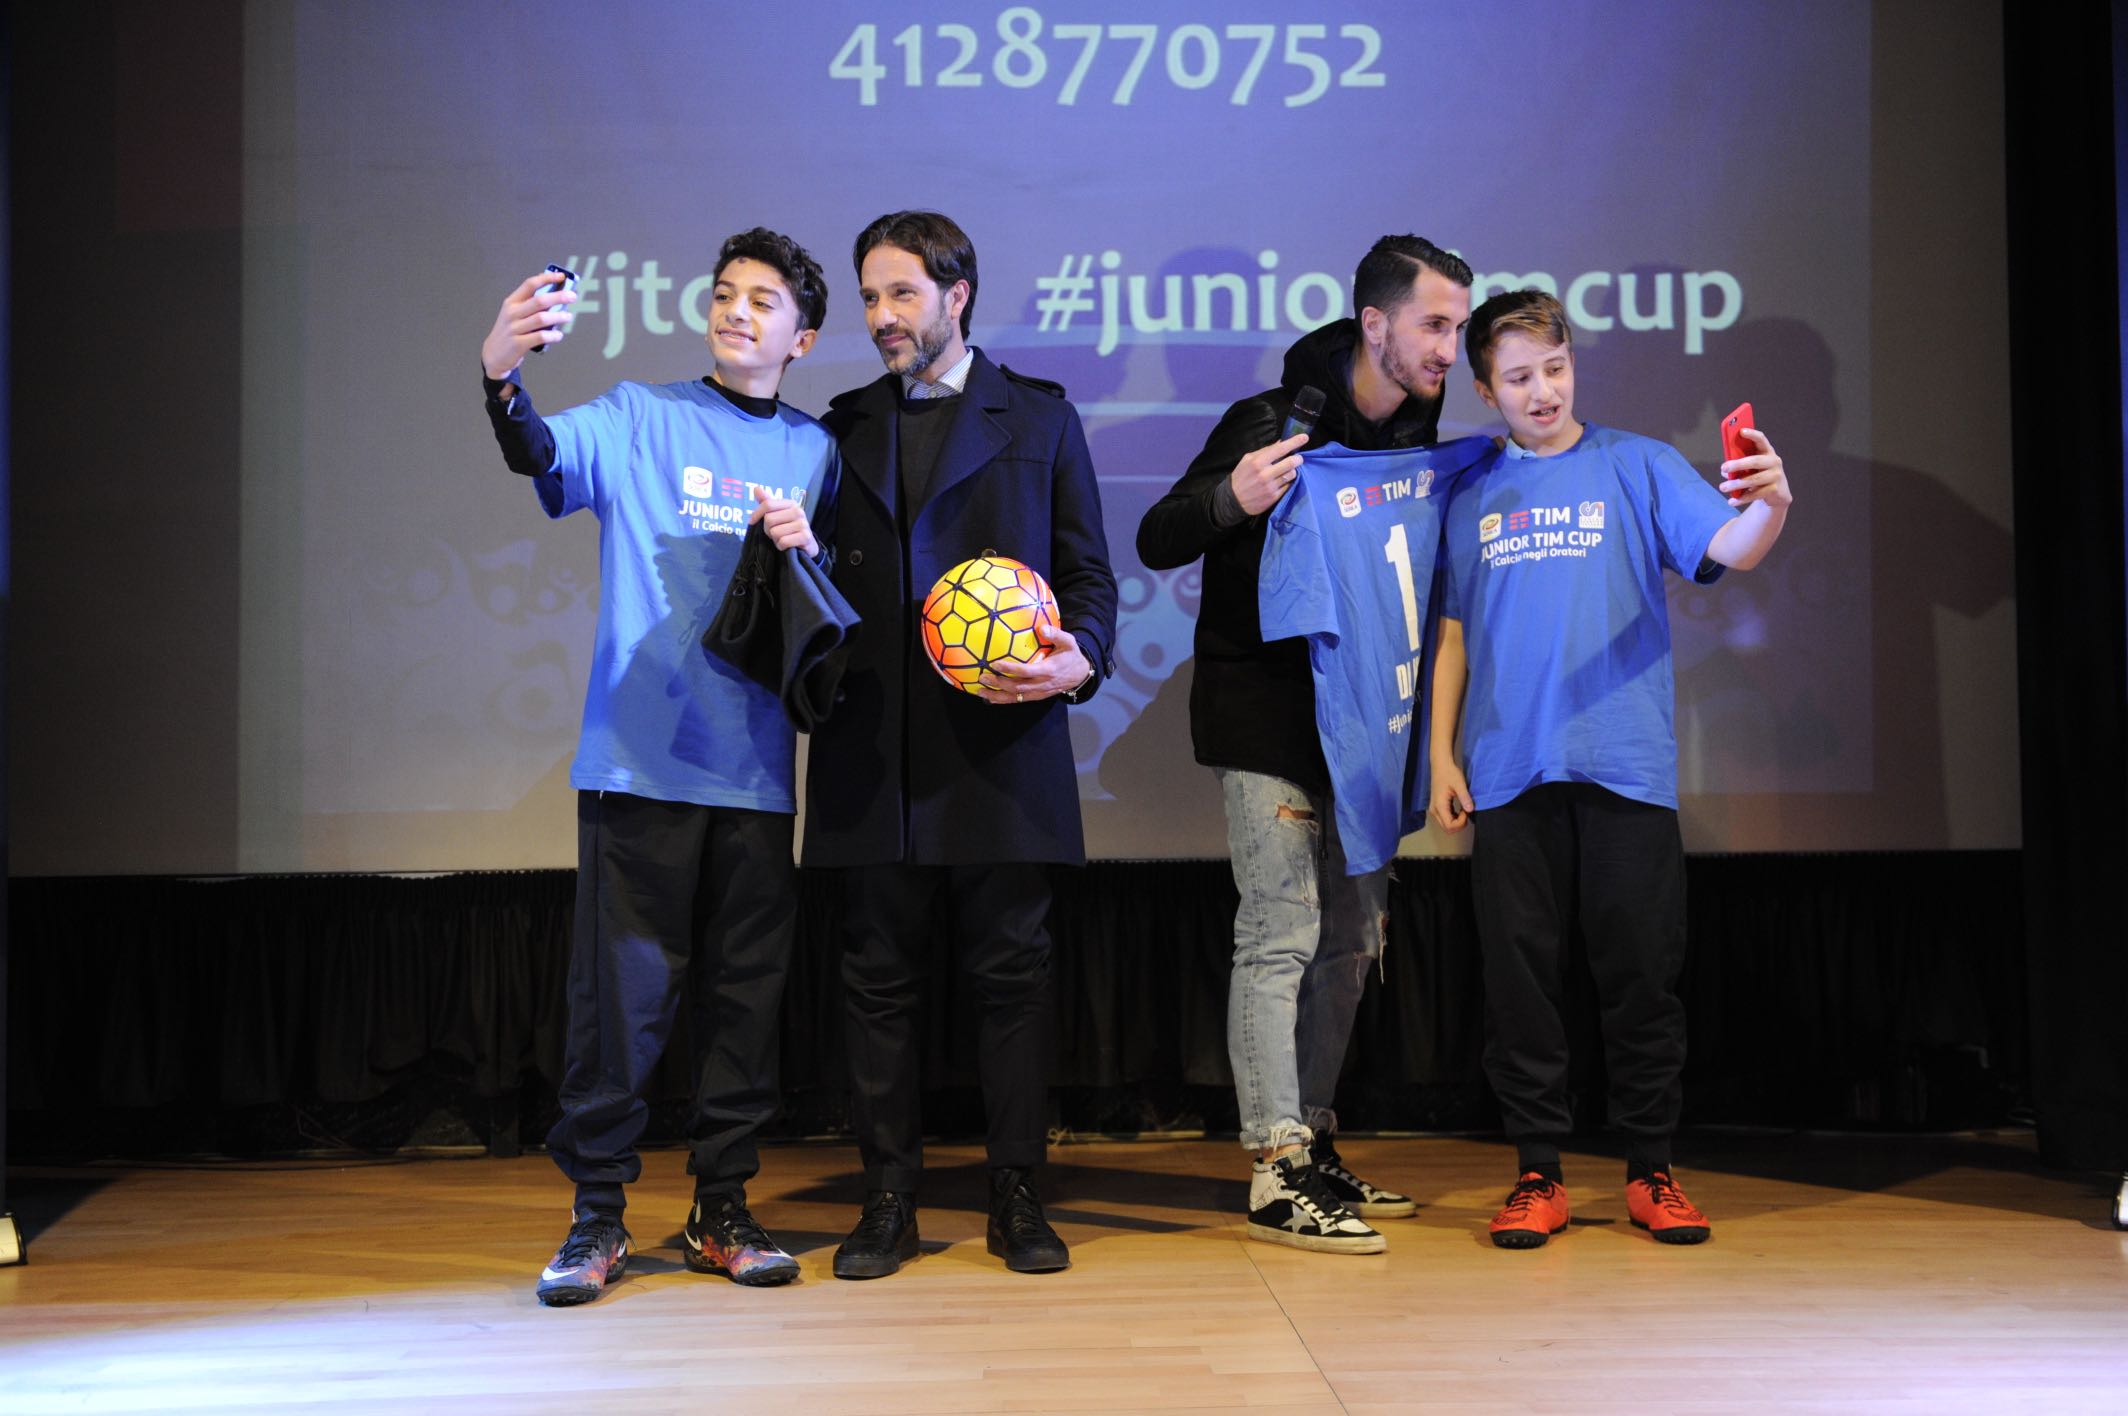 Junior TIM Cup Napoli 3